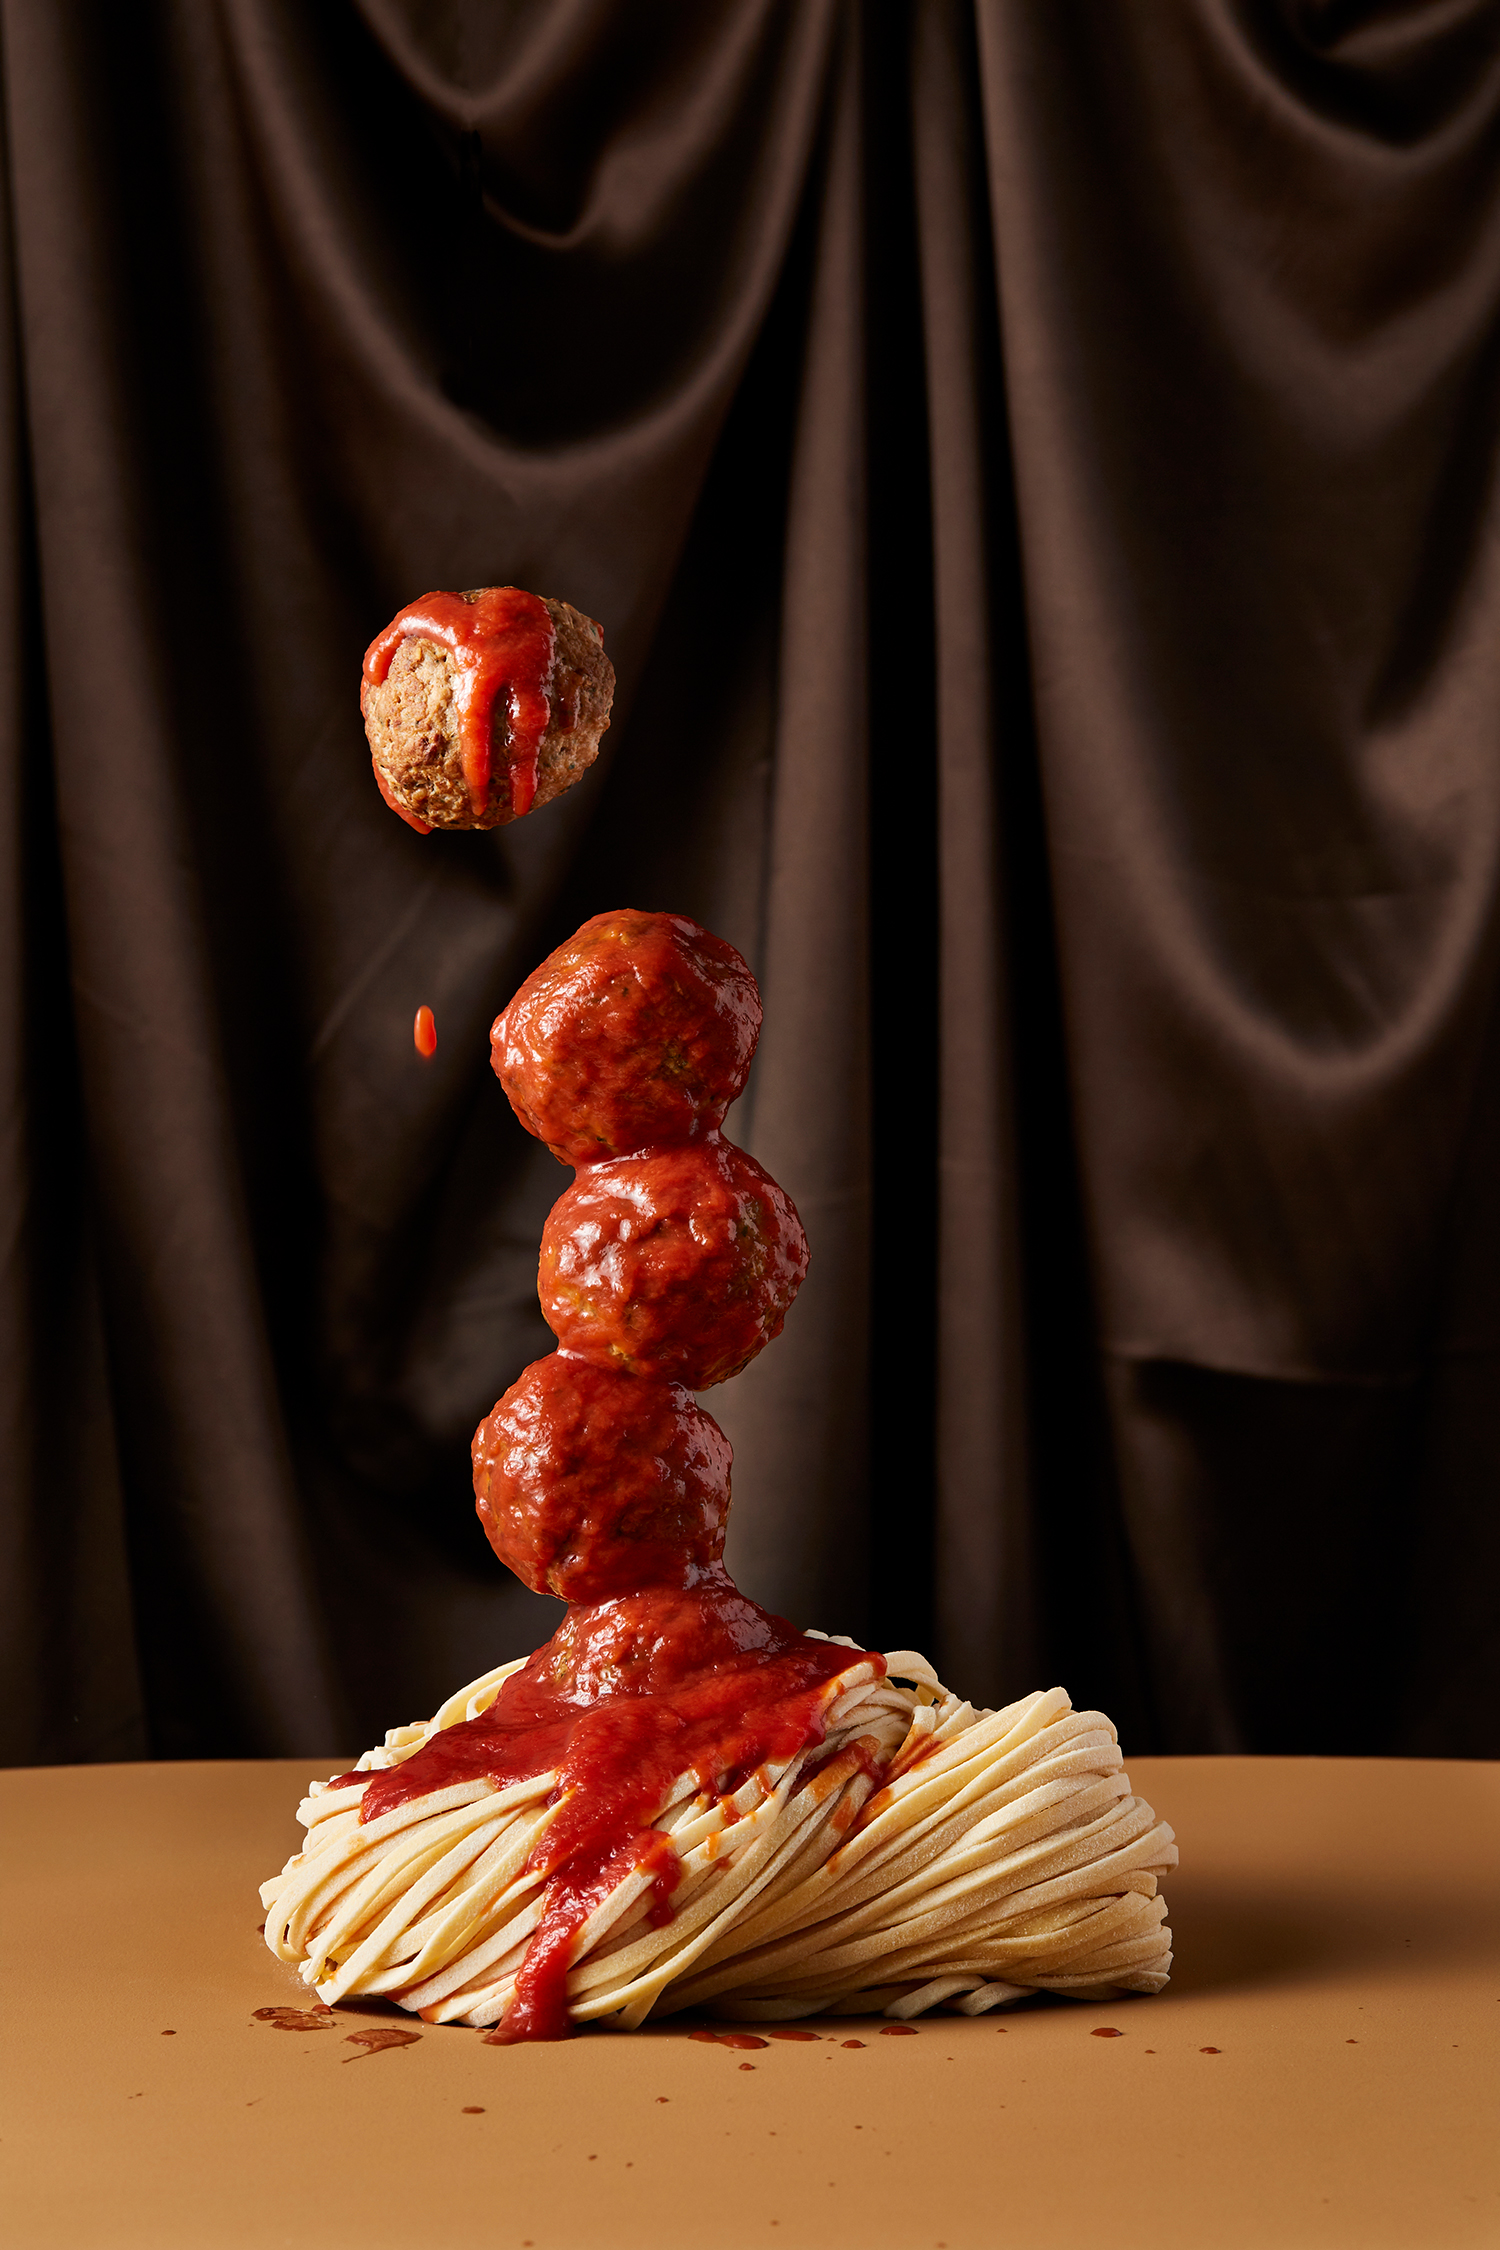 SPAGHETTI+MEATBALLS shot by Sydney advertising, Interior, food and lifestyle photographer Benito Martin